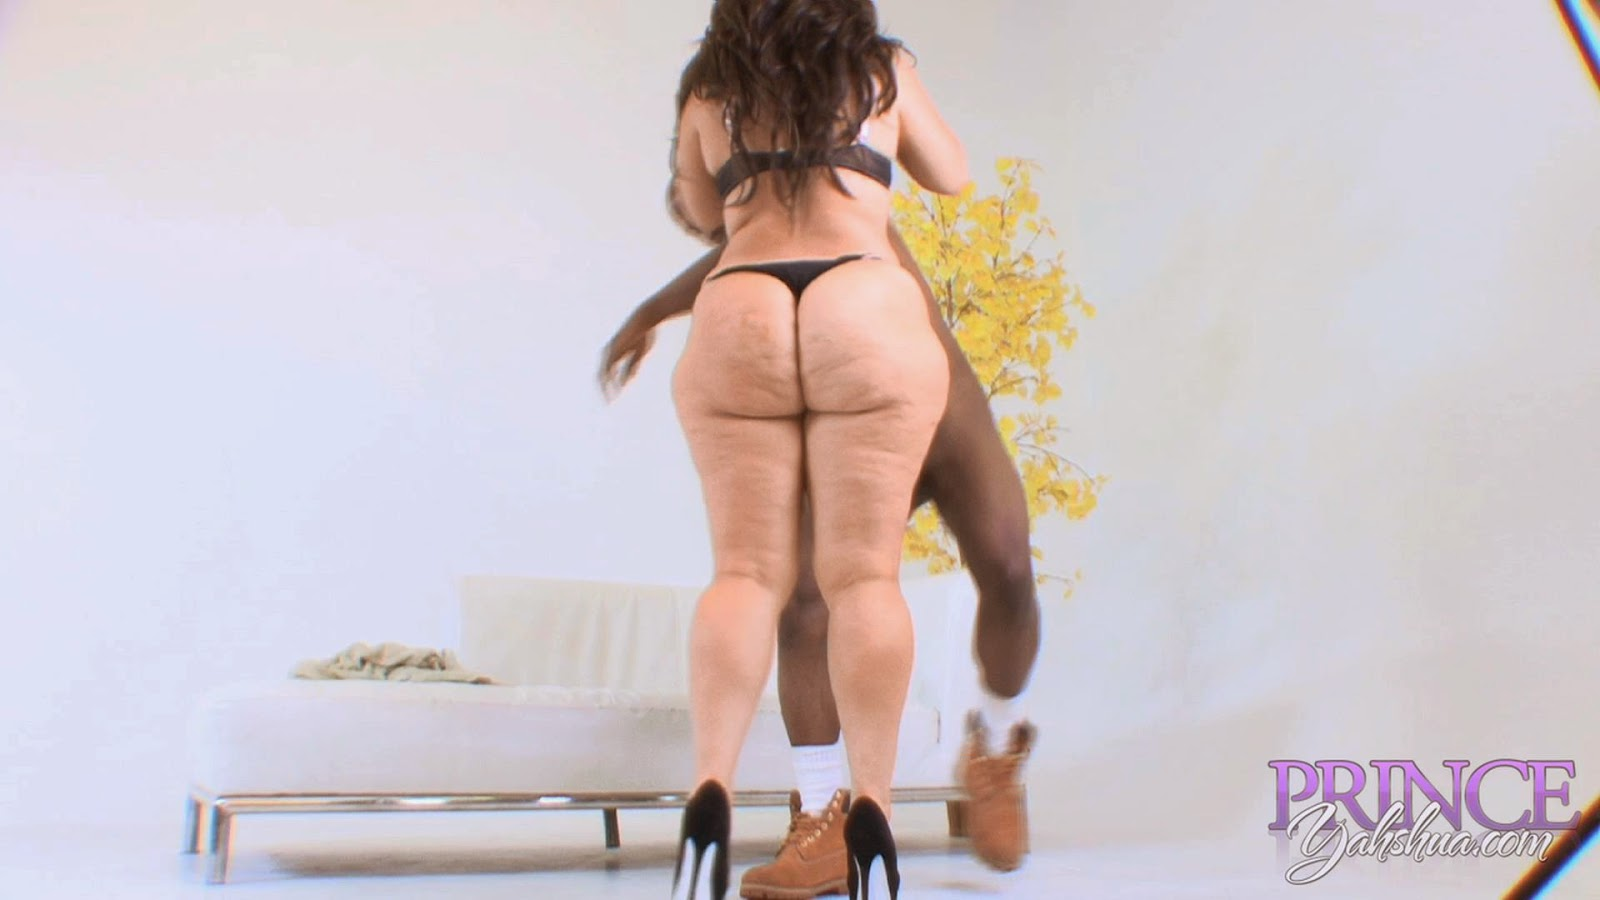 image Vanessa blake latin phat ass girl vol2